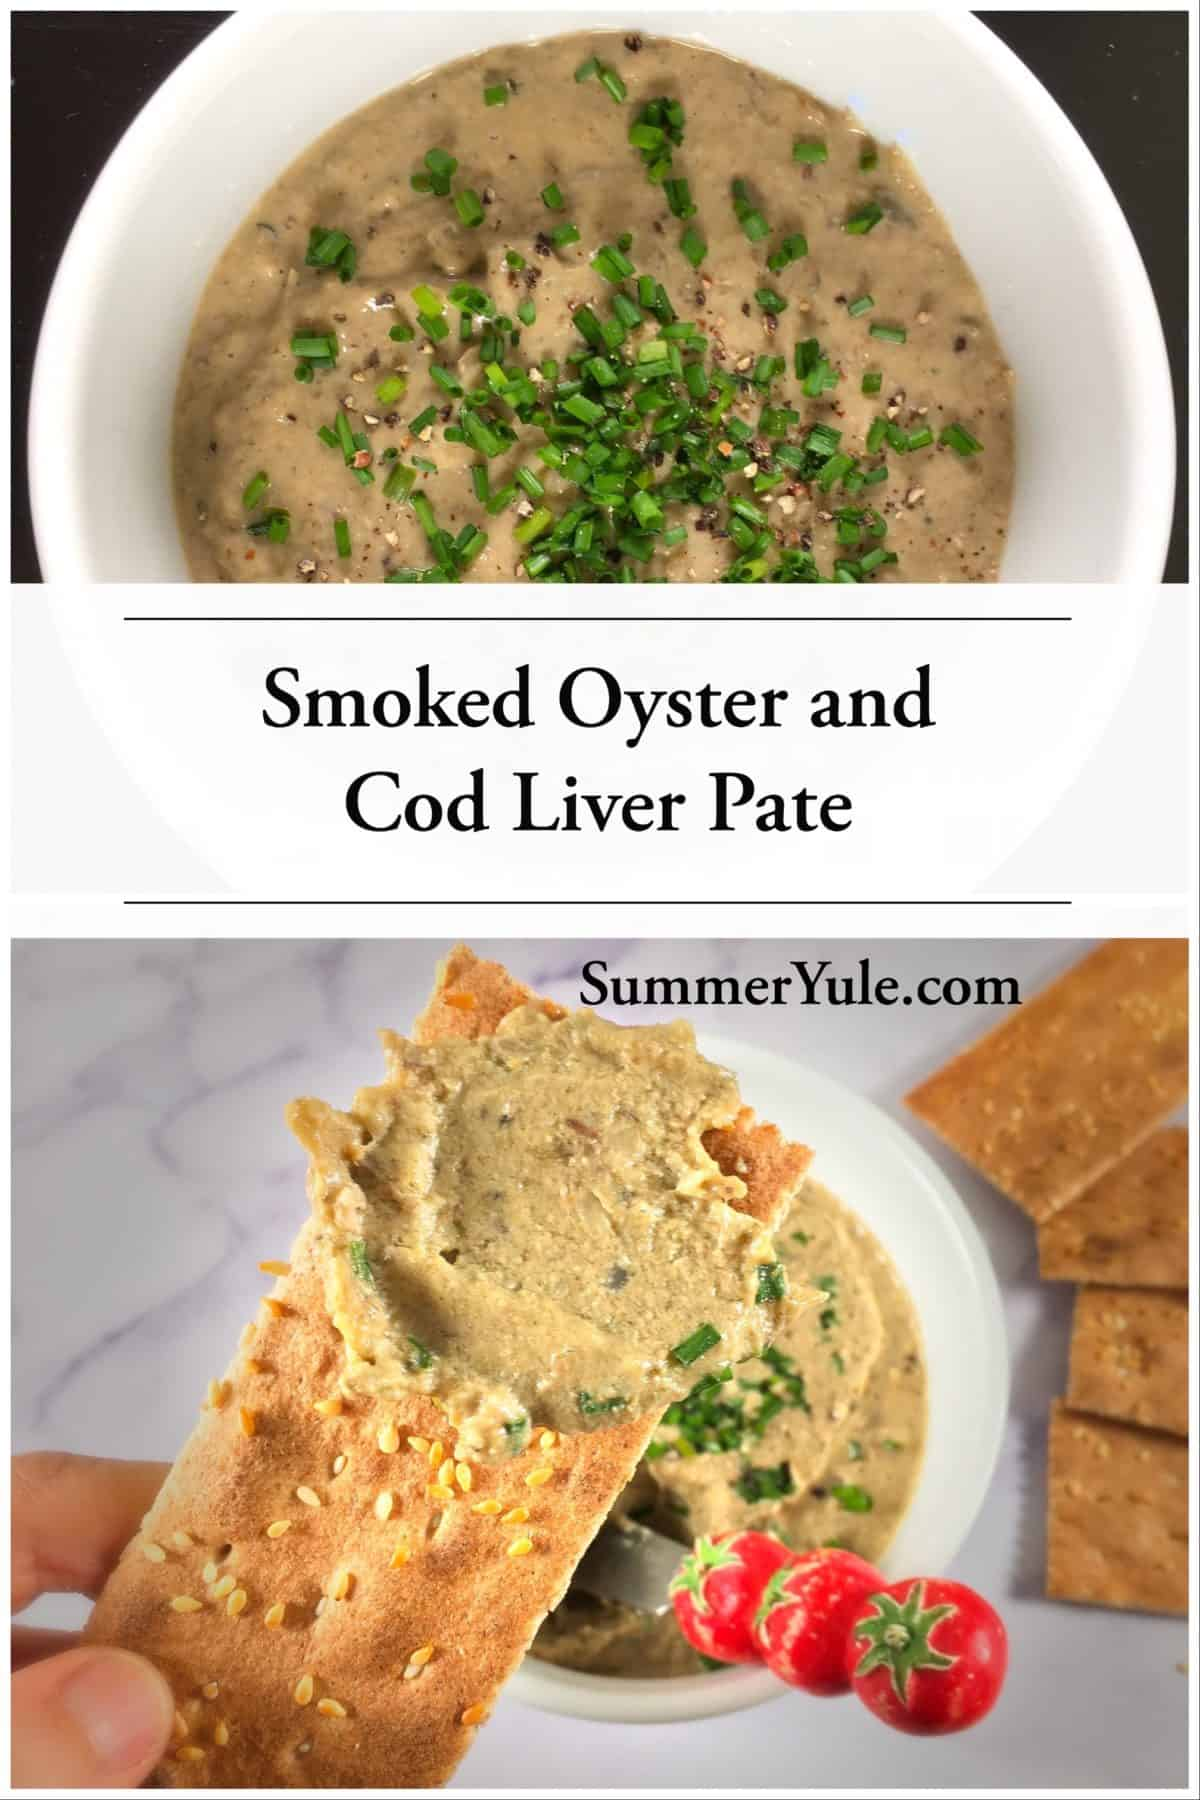 Smoked Oyster and Cod Liver Pate on a cracker, with more pate in ramekins (long Pinterest image)